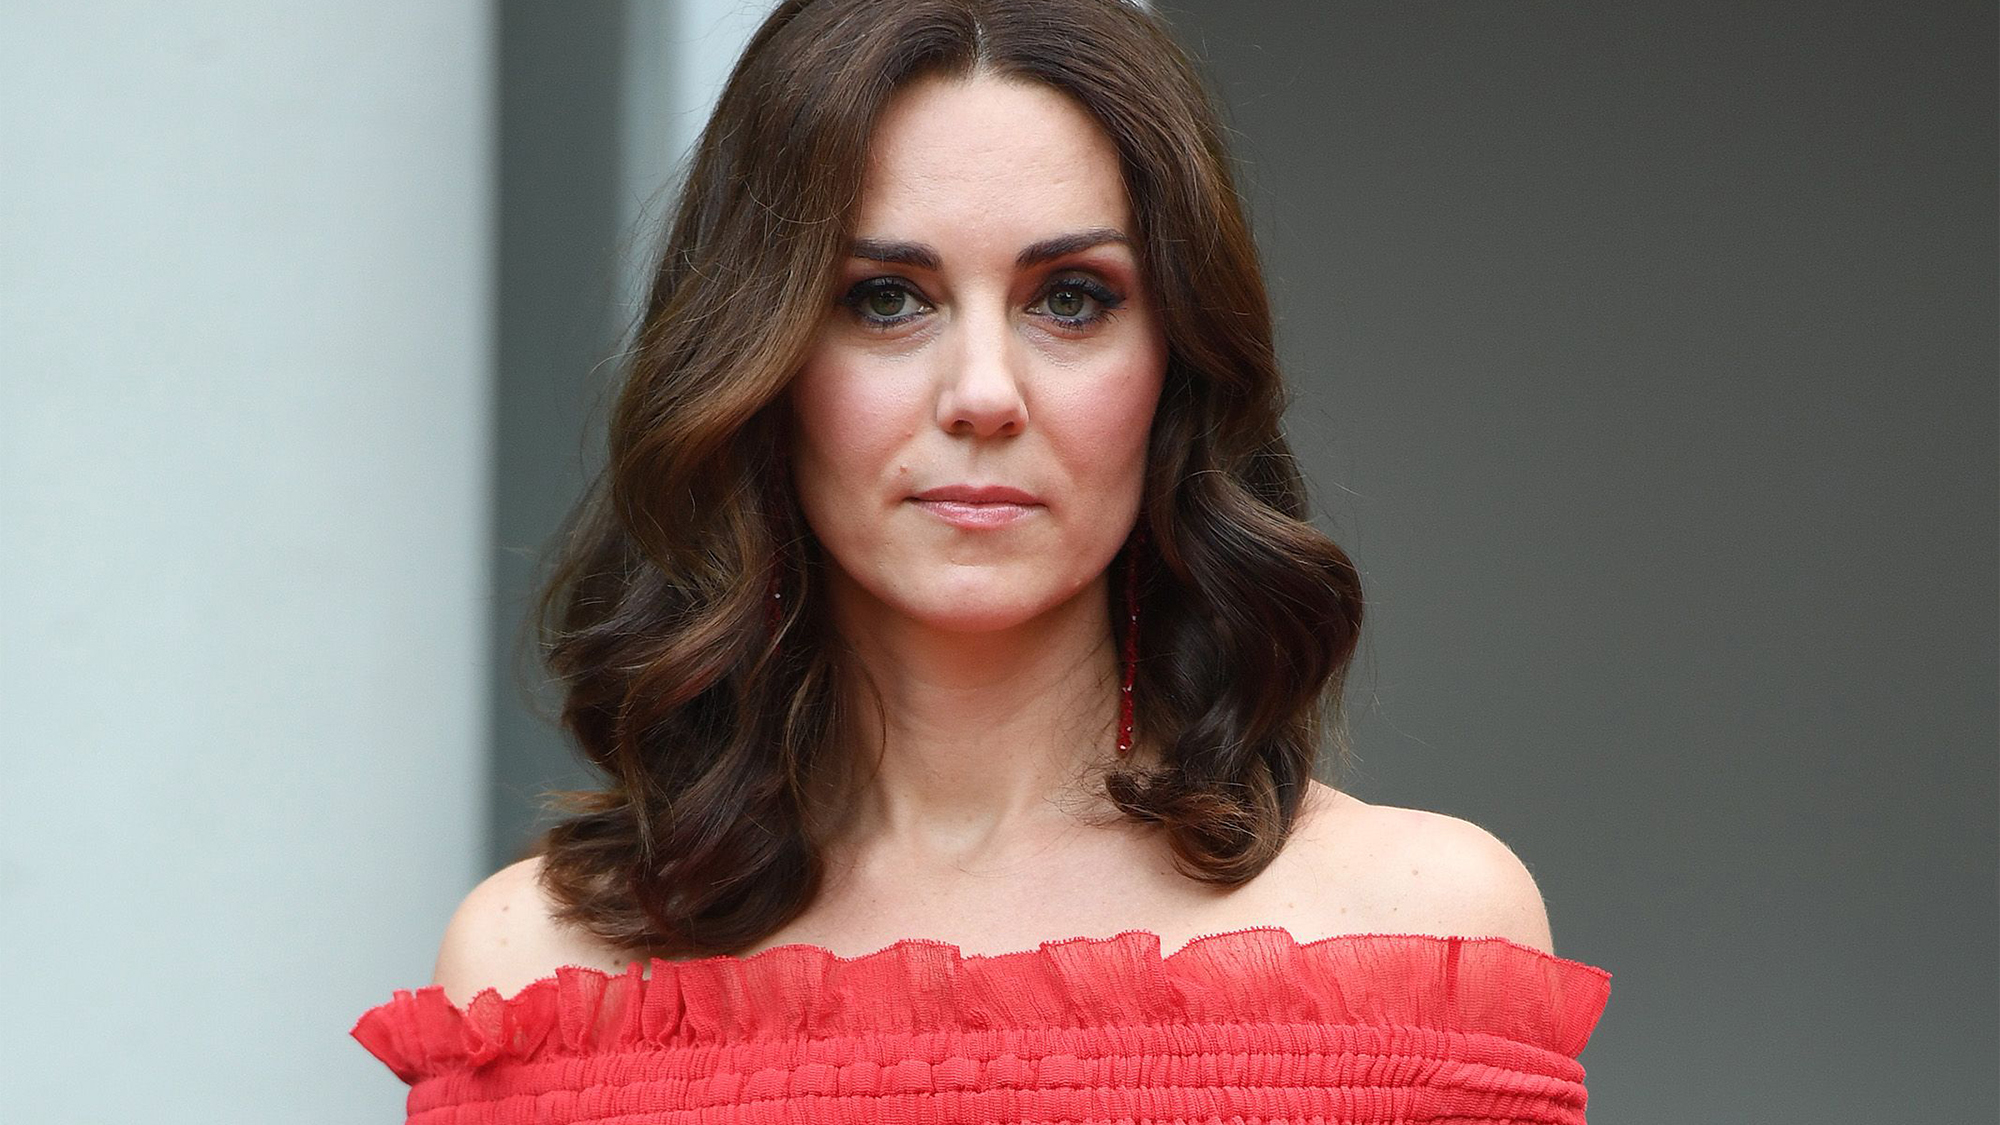 Another A-lister has been admitted to hospital with hyperemesis